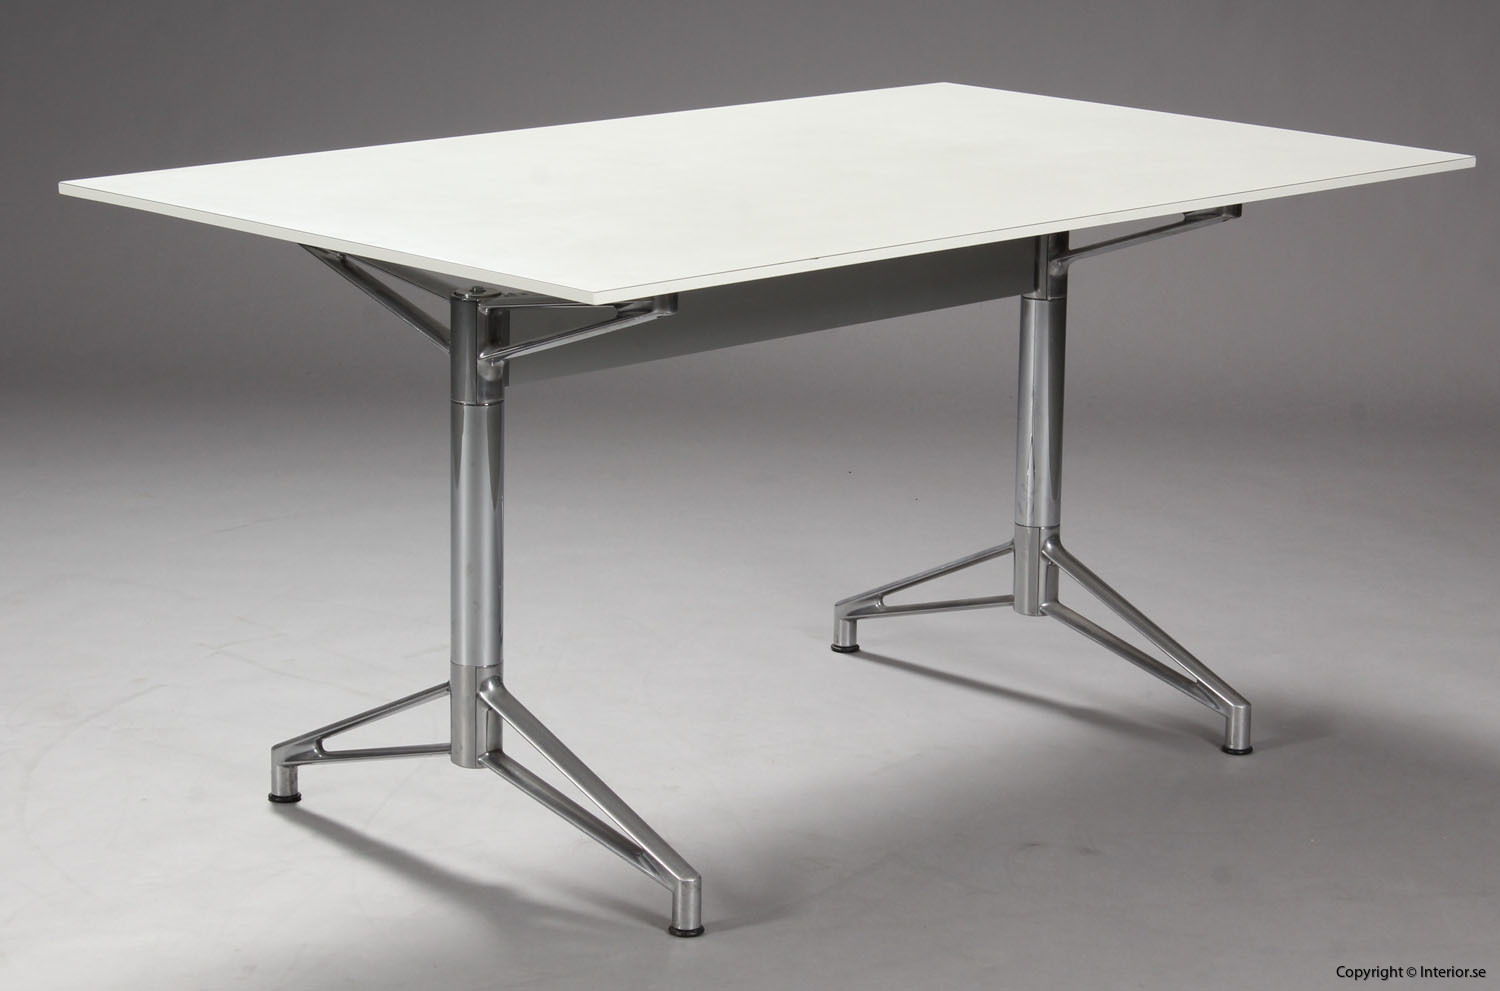 Konferensbord, Kusch & Co One Desk - 200 x 90 cm konferenztisch conference table